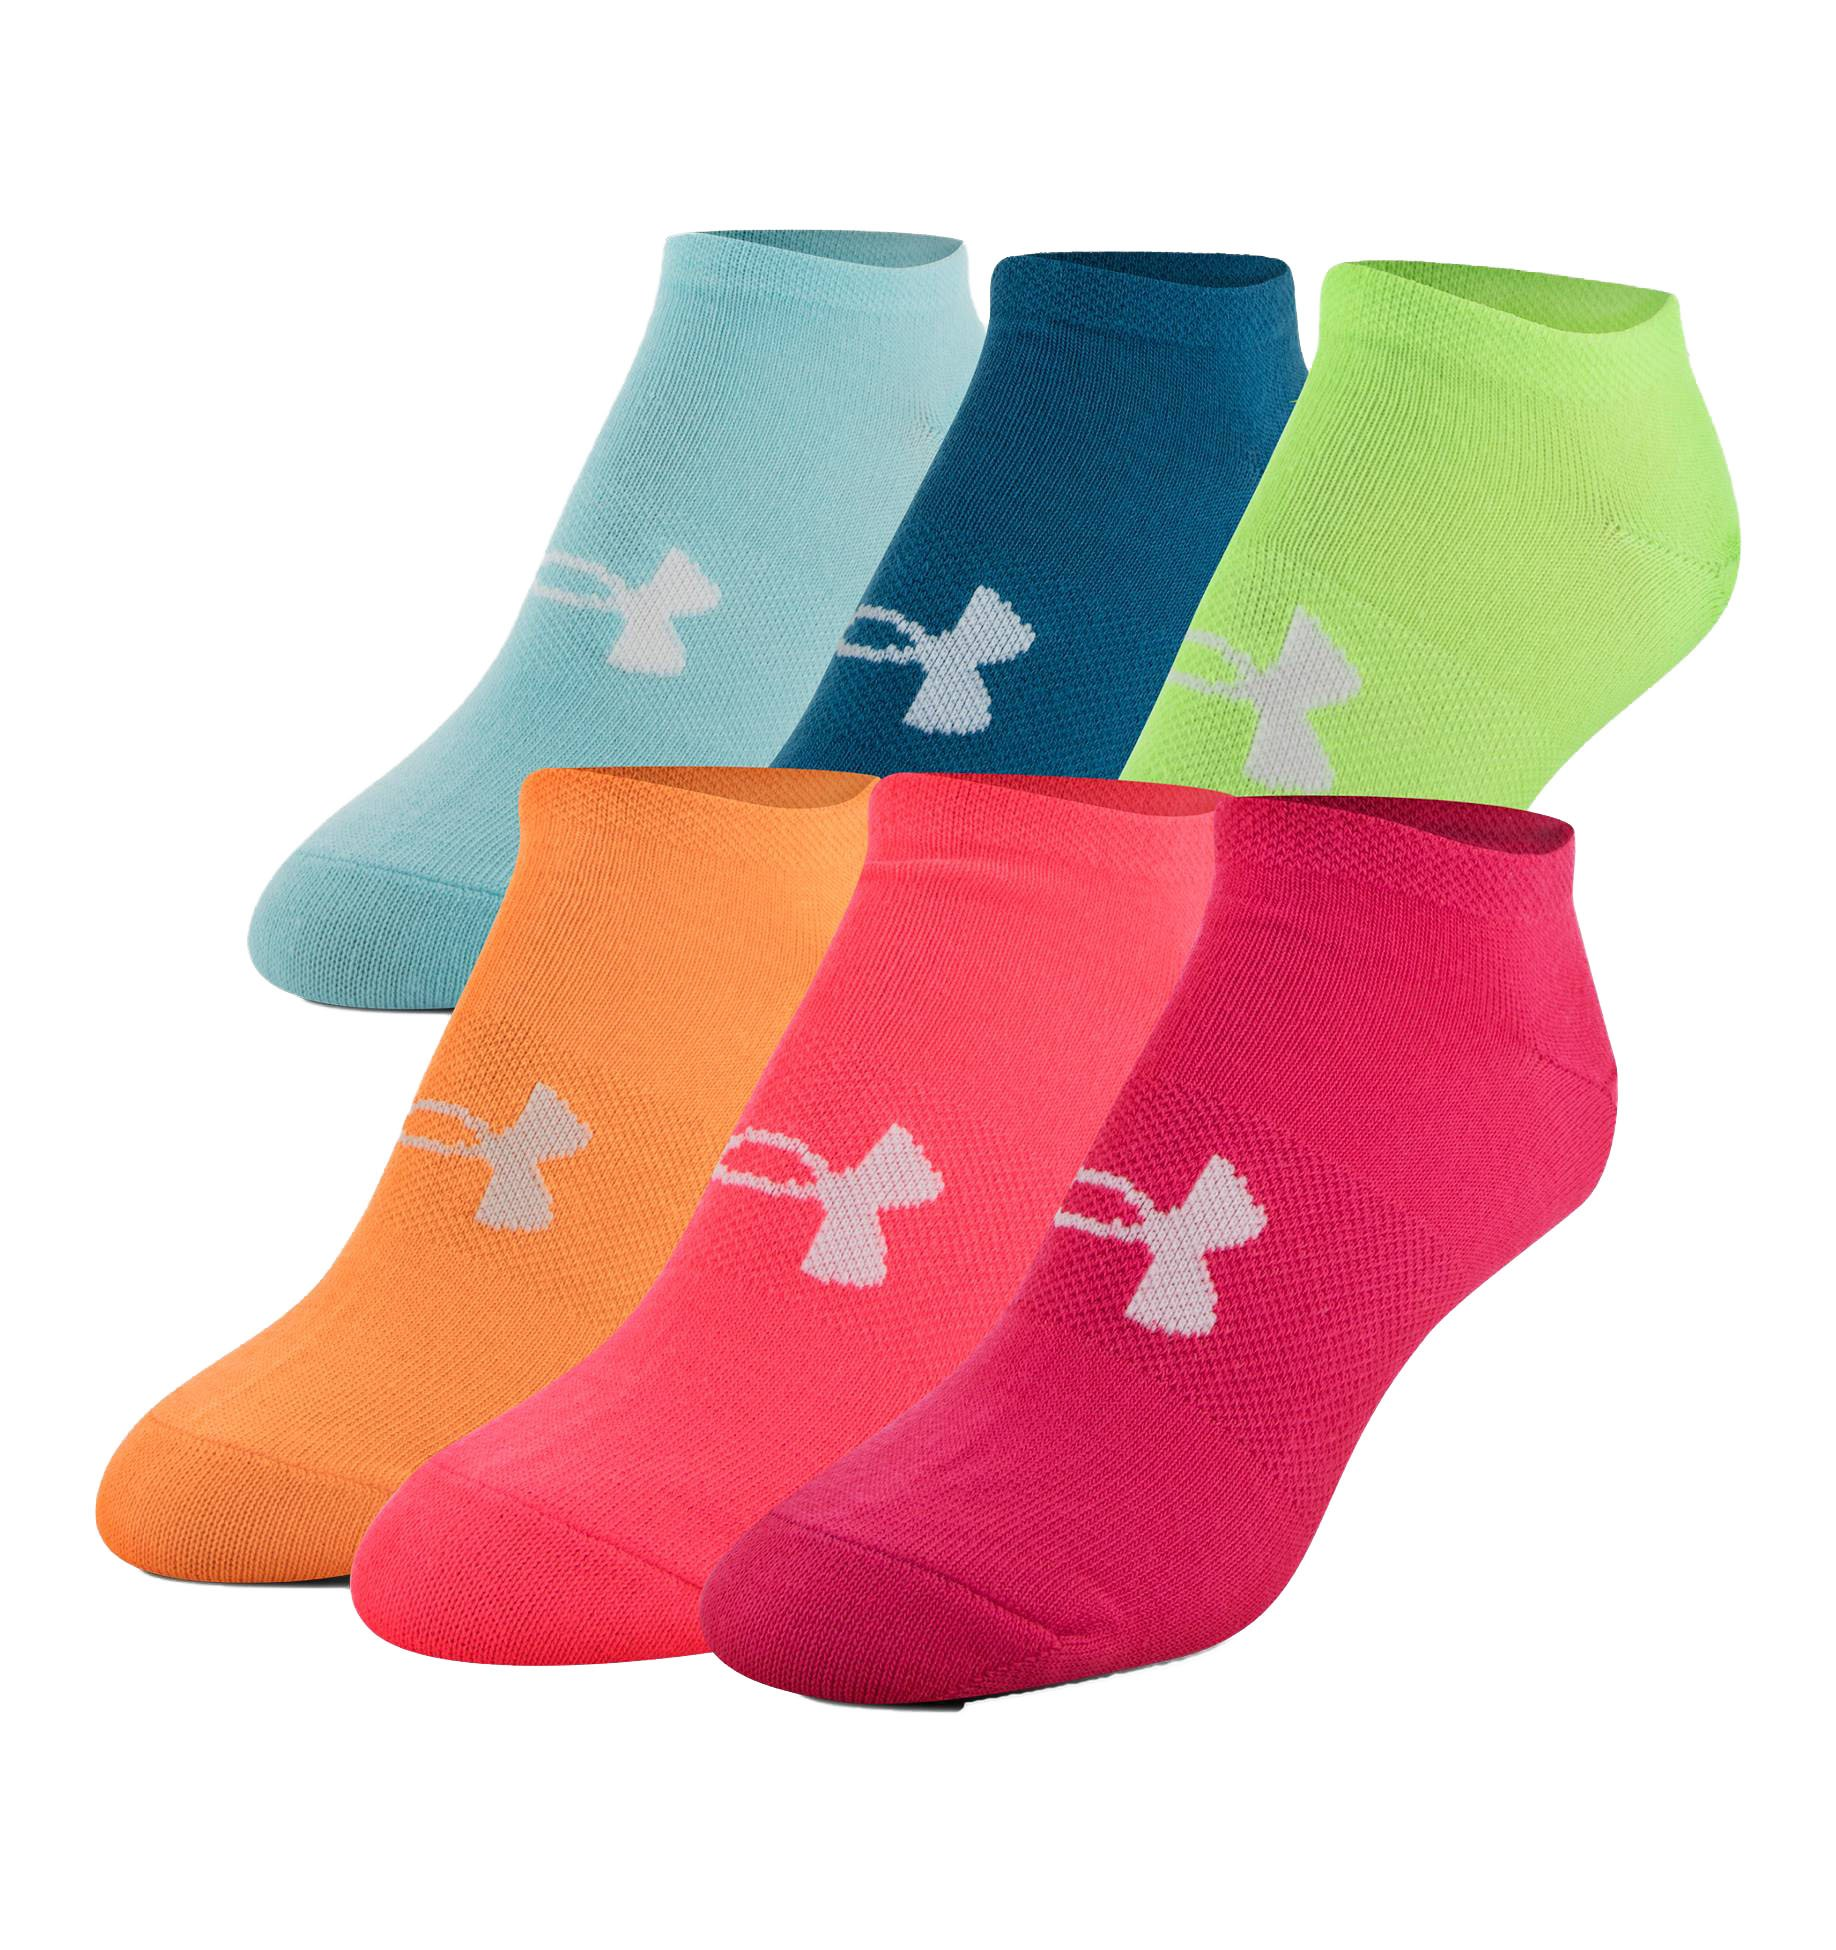 Under Armour Girls Essential No Show Socks (6 Pack) (Youth Small (Youth Shoe Size 13.5K-4Y), Assorted (1264054-975) / Pink/Orange)